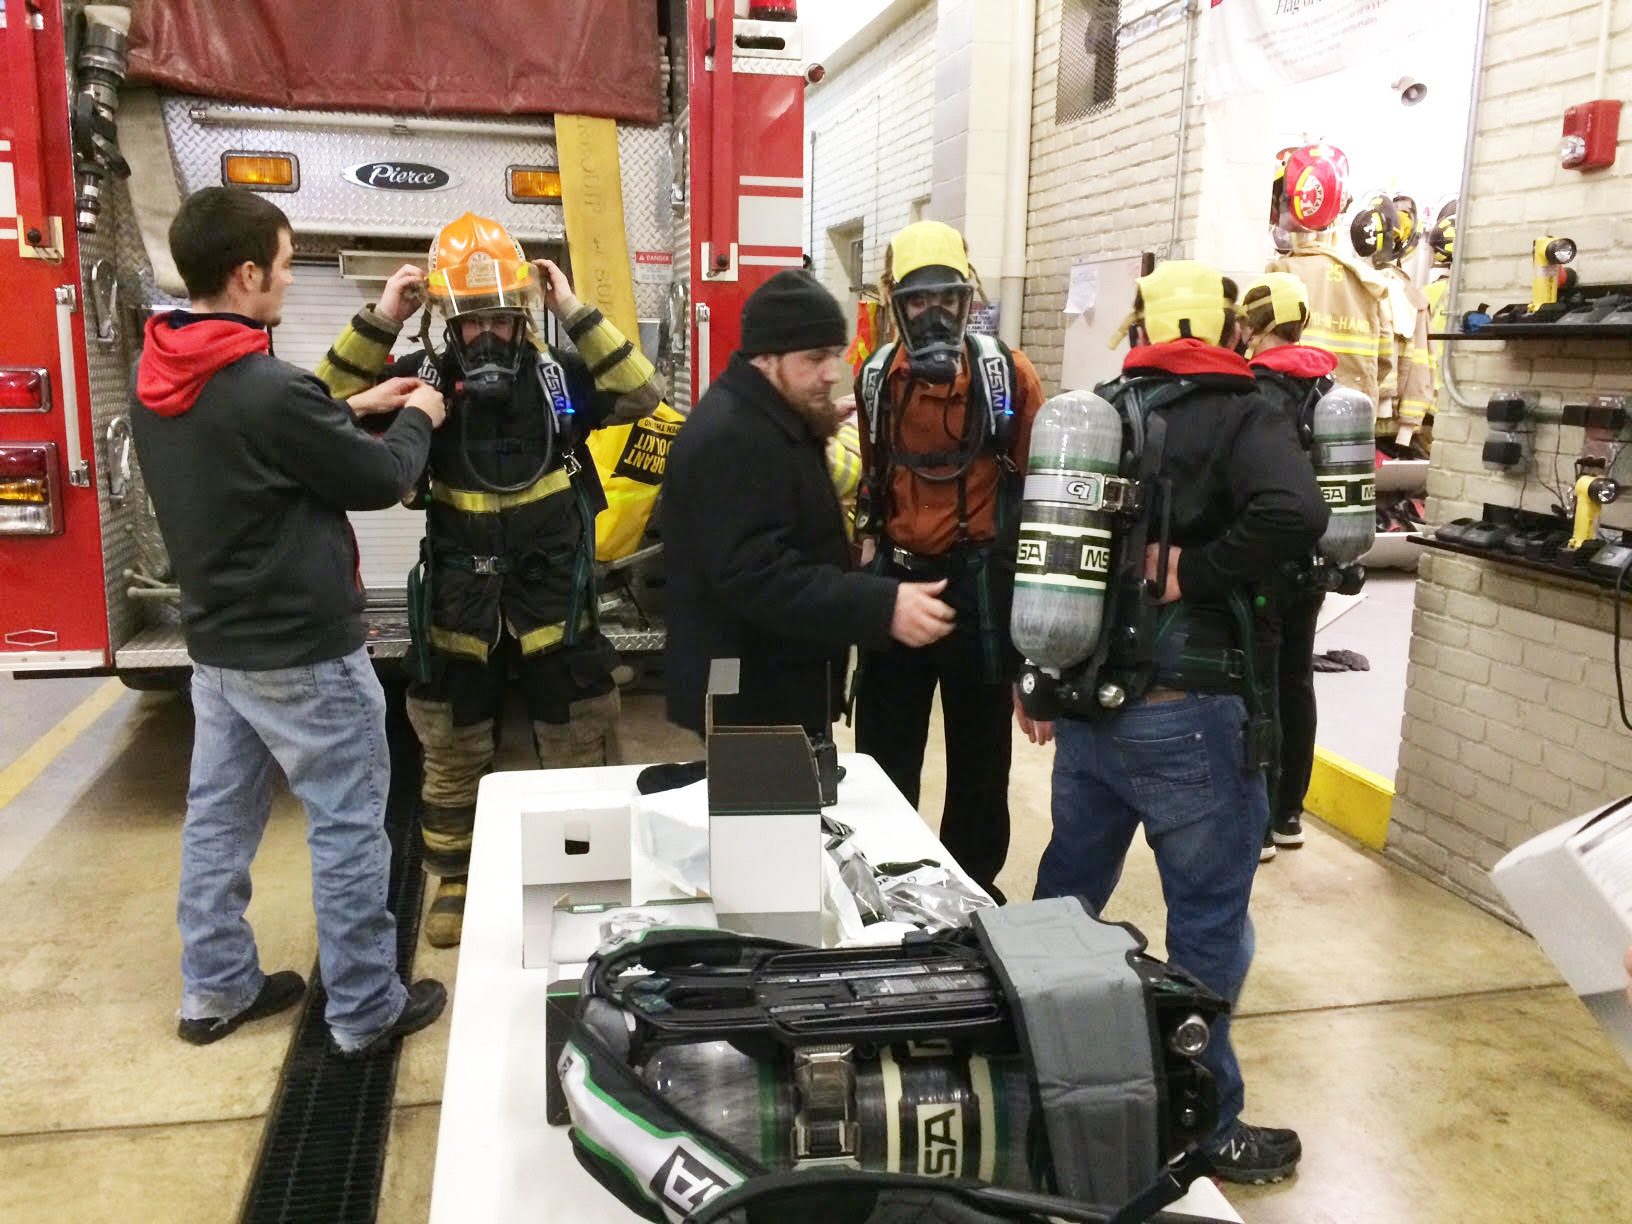 Newsletter Page 3 Fire Engines Diagram Traffic Cone Scba Self Contained Breathing Apparatus Training On Jan 19 2016 With The